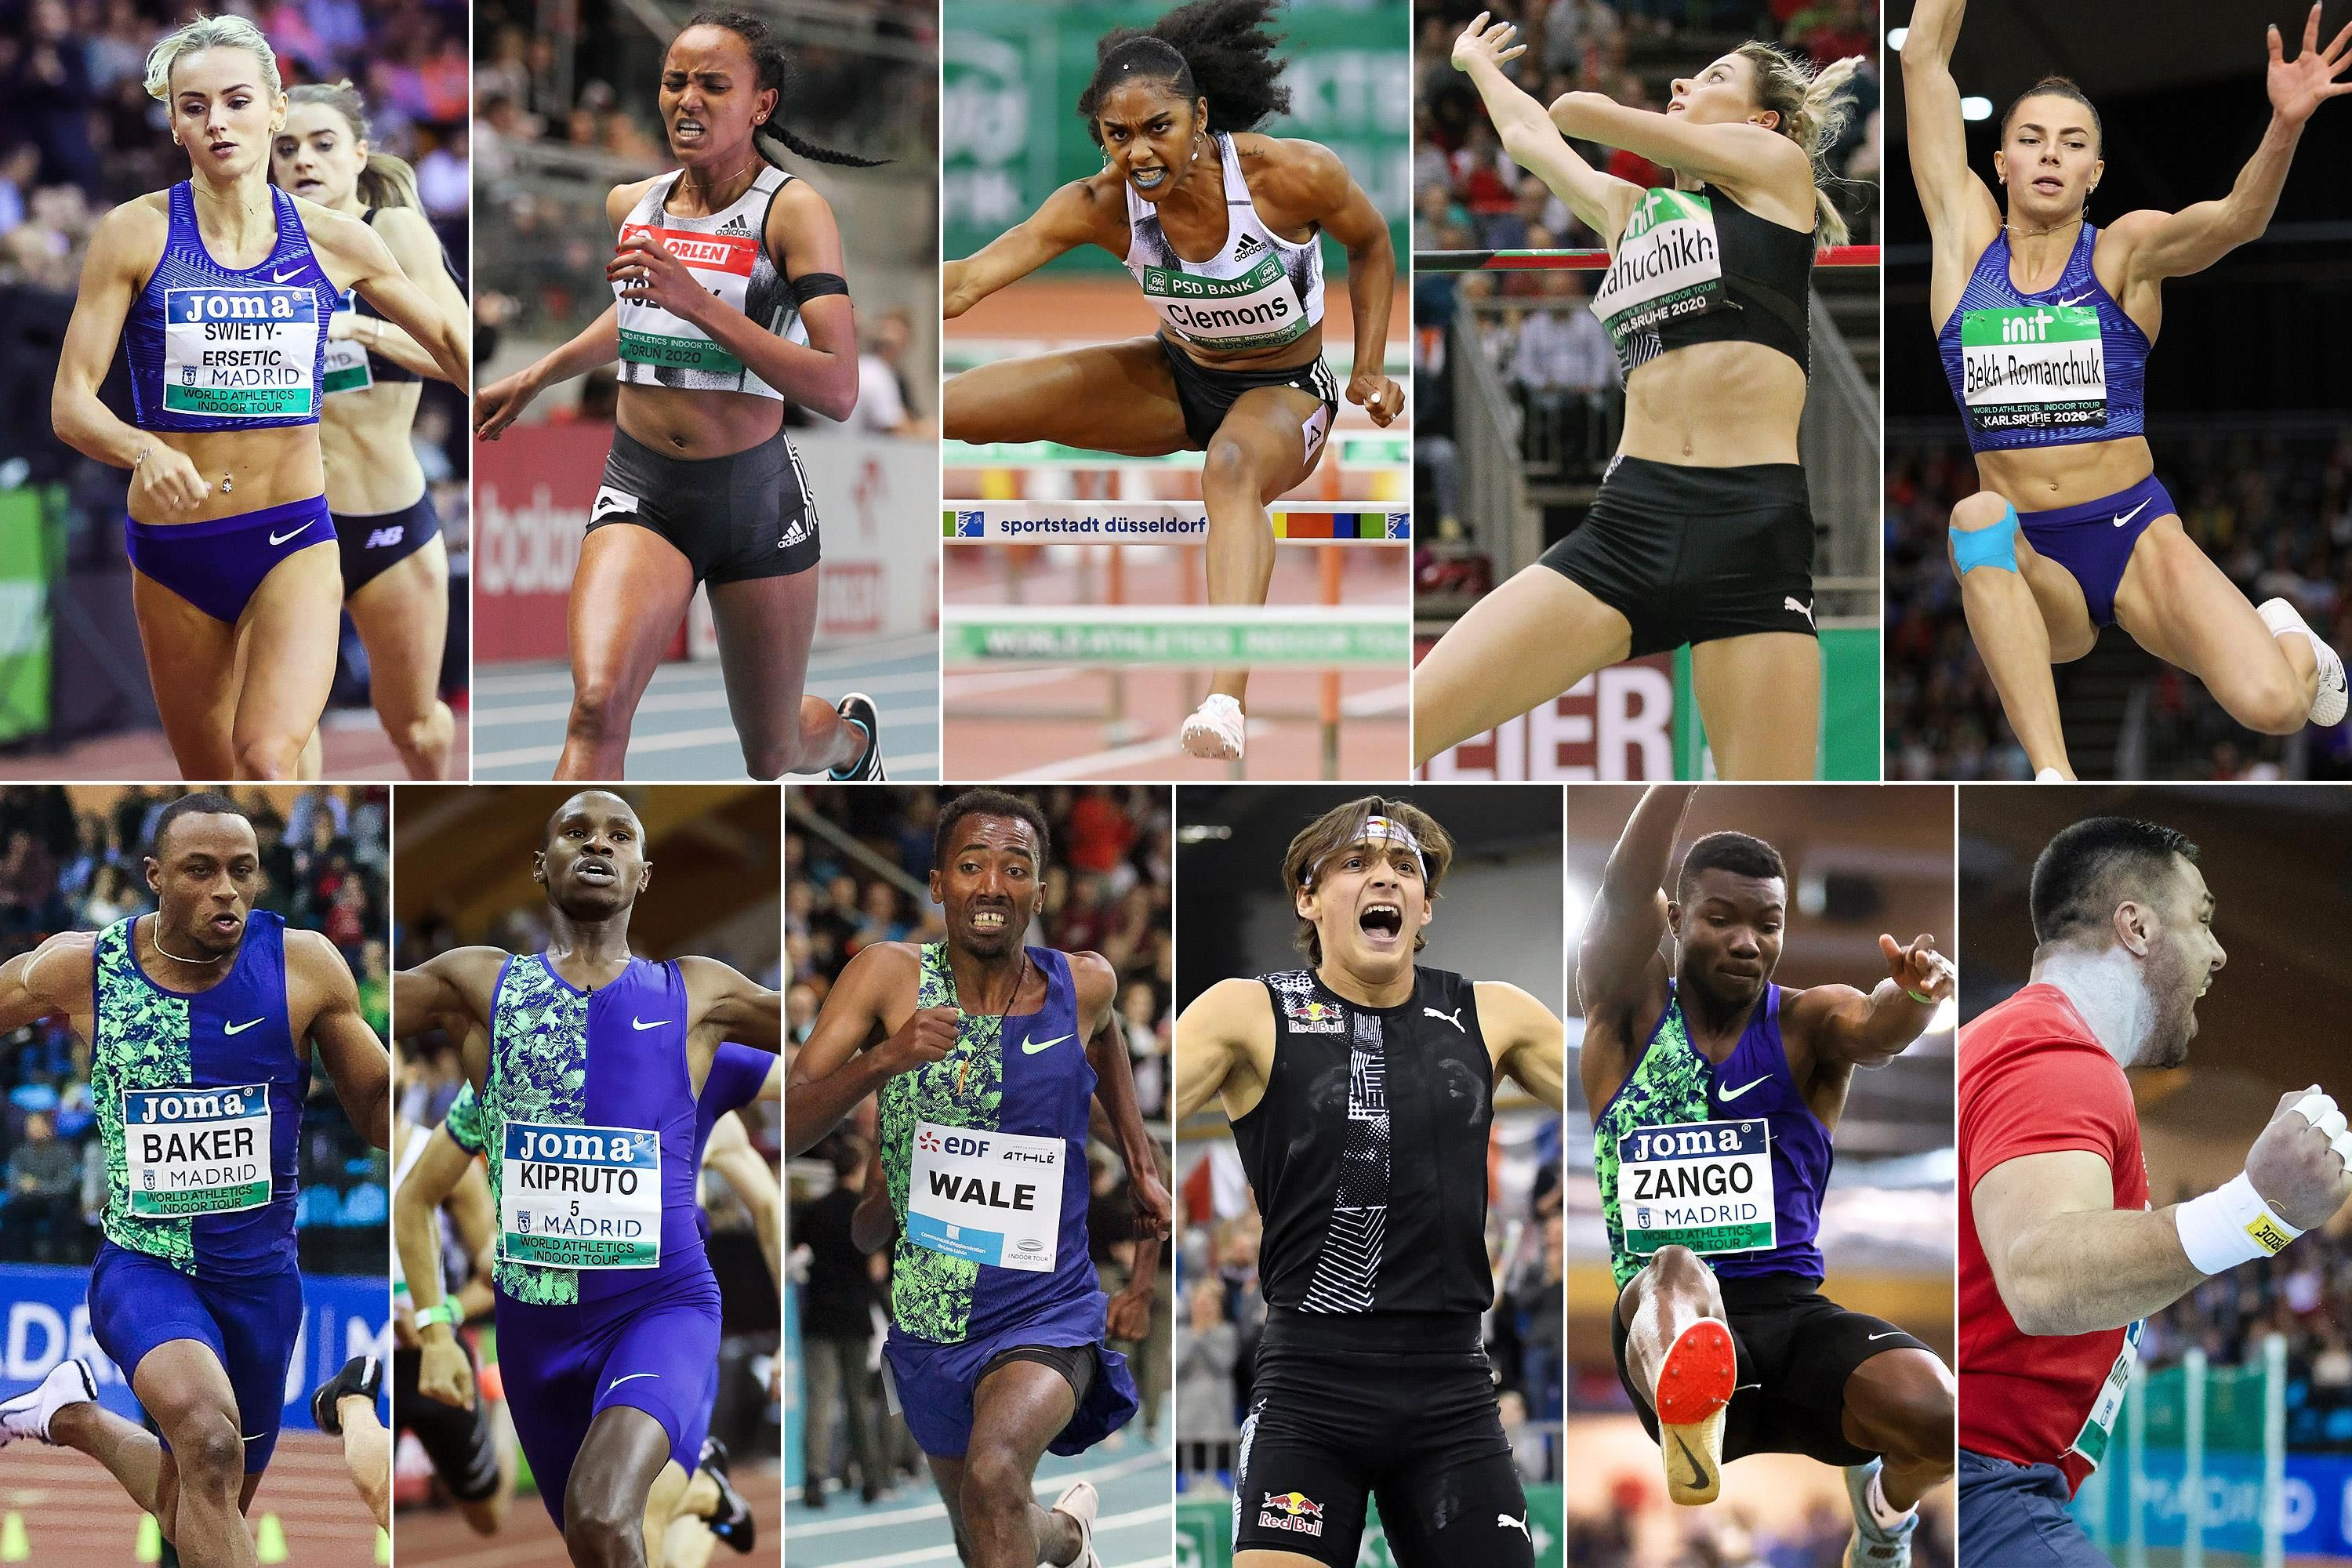 After the seventh and final meeting of the 2020 World Athletics Indoor Tour brought the series to a close for another year, 11 athletes have booked their place at the World Athletics Indoor Championships Nanjing 2021.